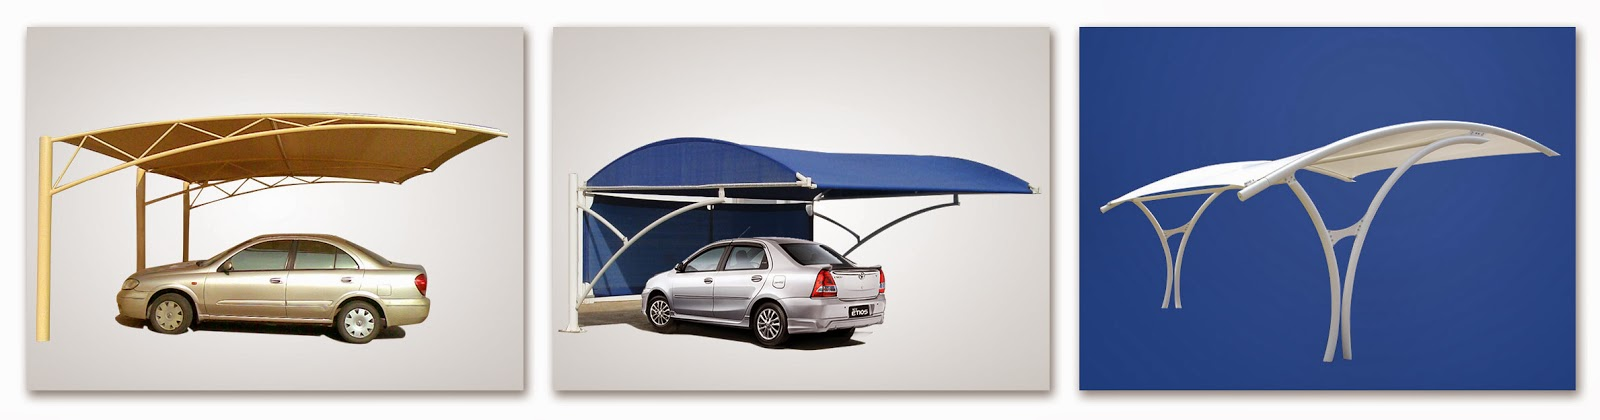 Car Parking Shades Dubai Car Parking Shades Manufacturers In Uae